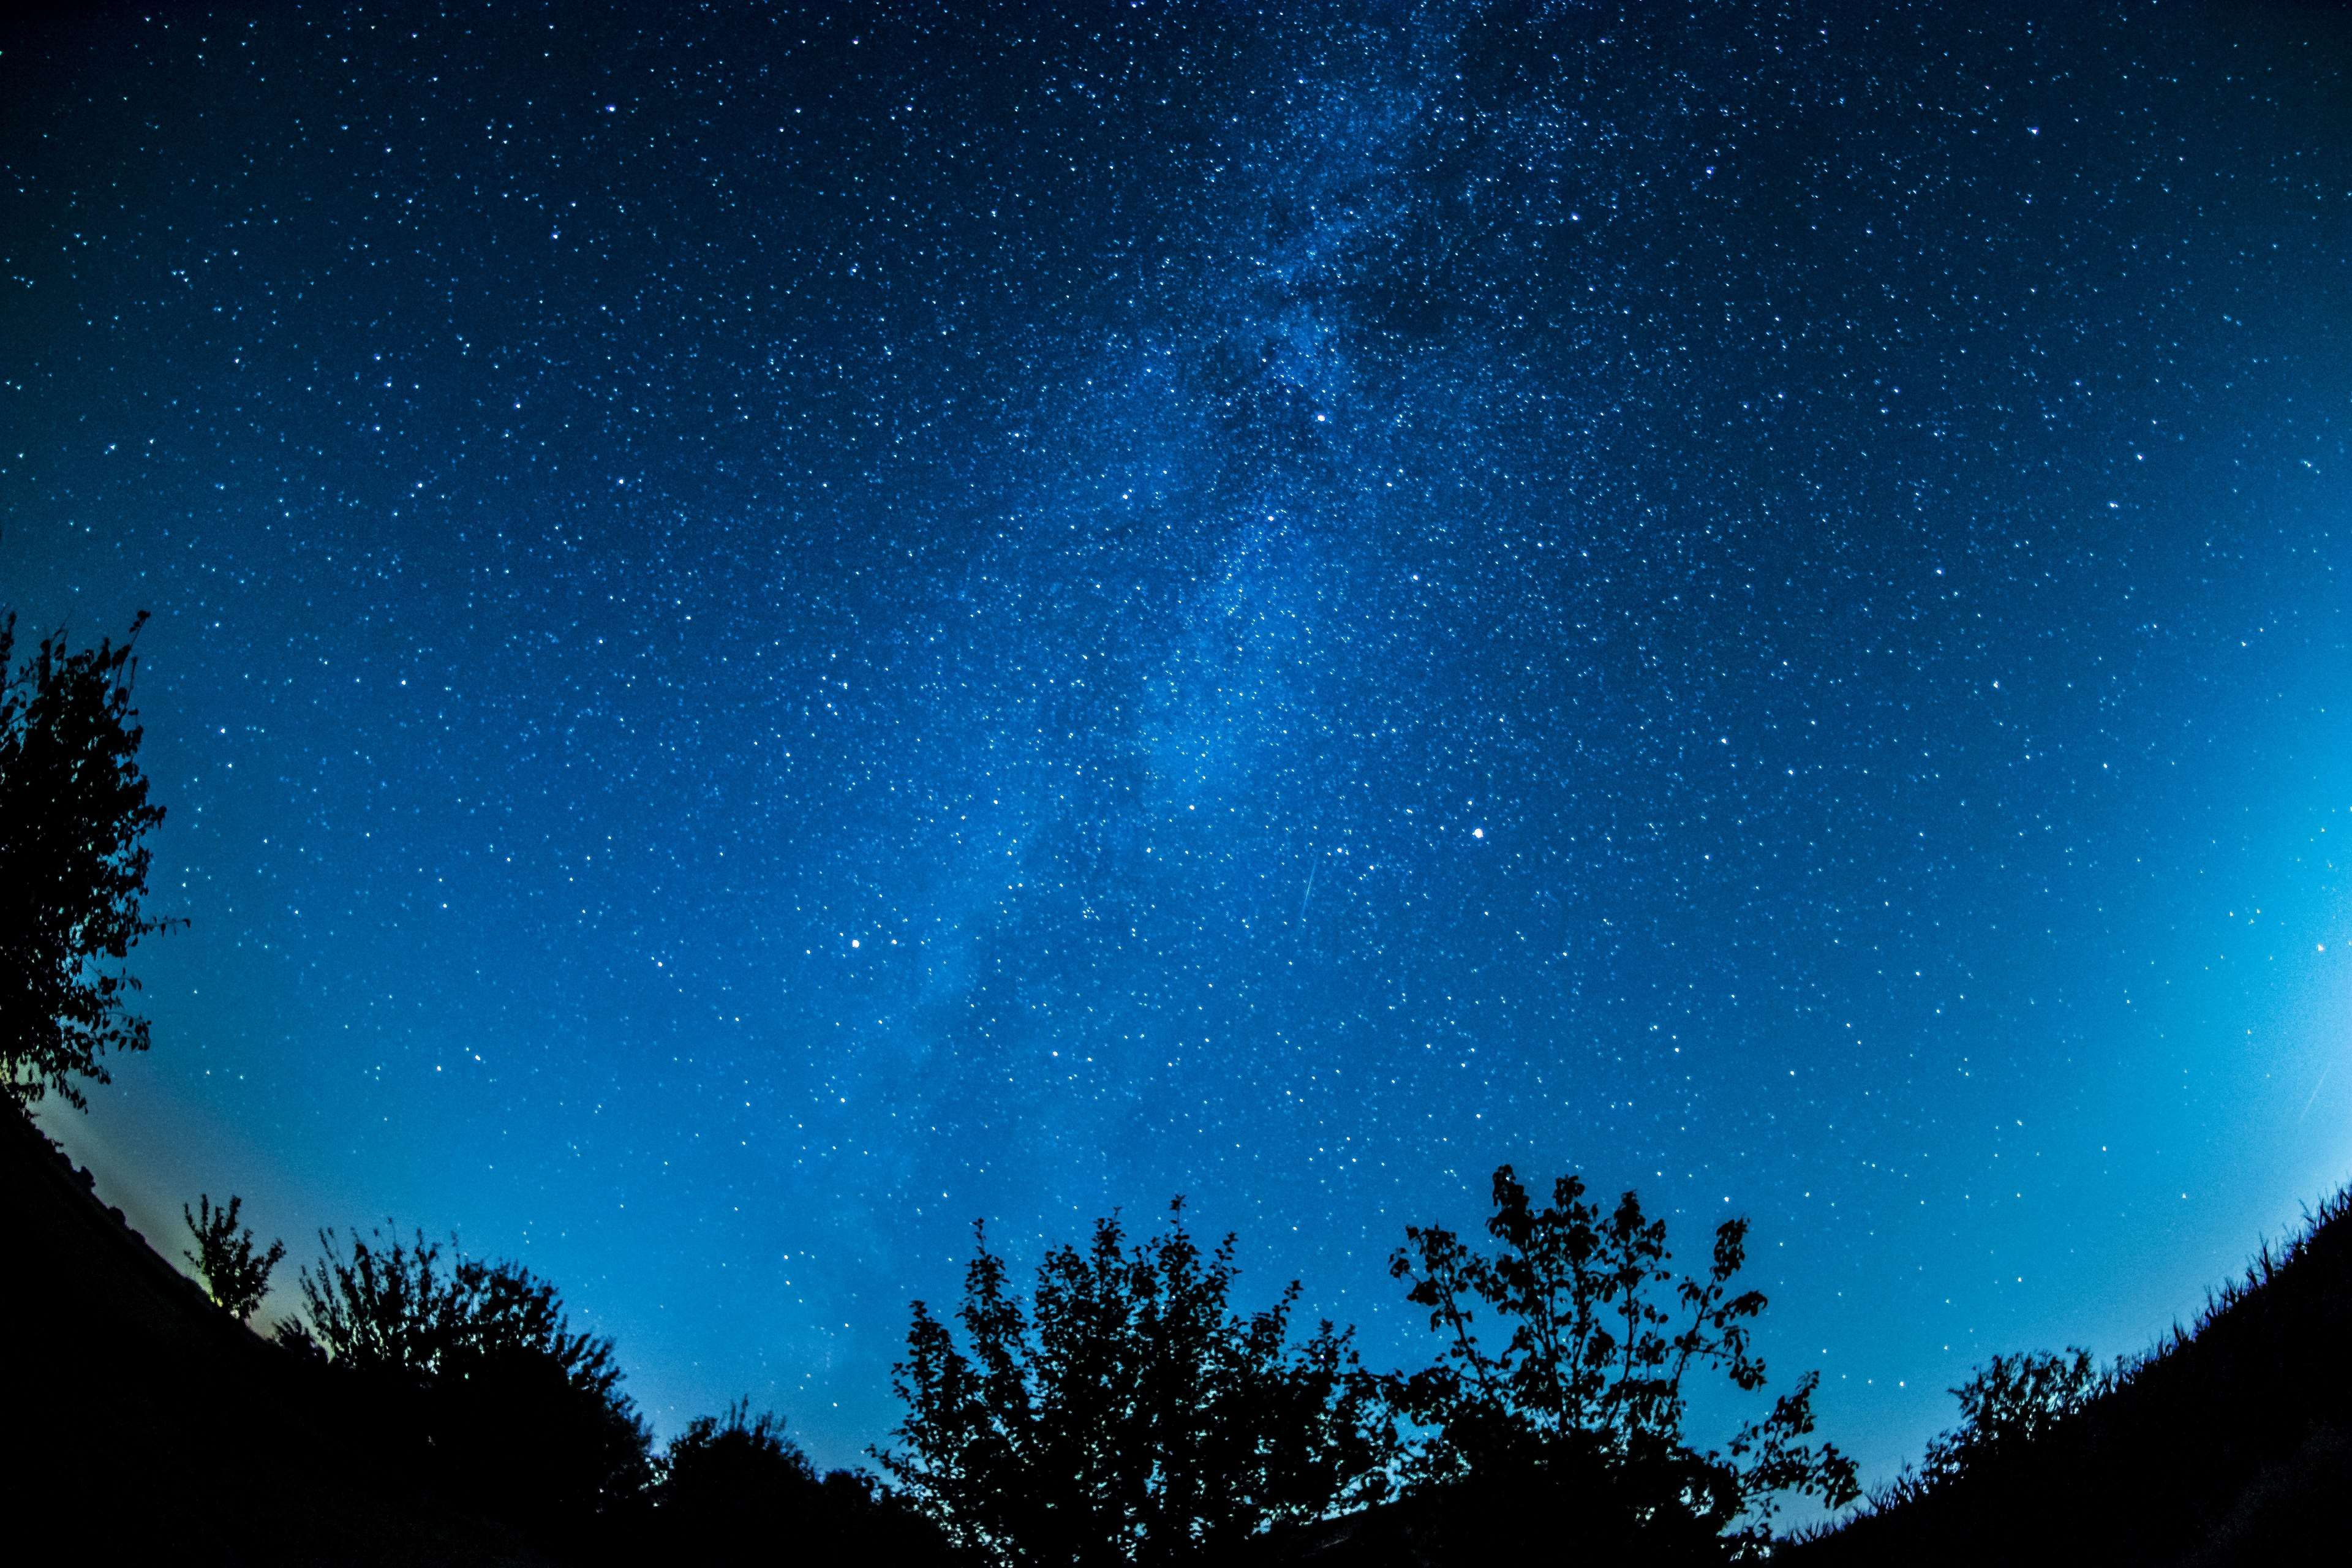 Astronomy Background Constellation Cosmic Cosmos Dark Evening Sky Exploration Forest Galaxy Landscape Milky Starry Sky Free Stock Photos Landscape